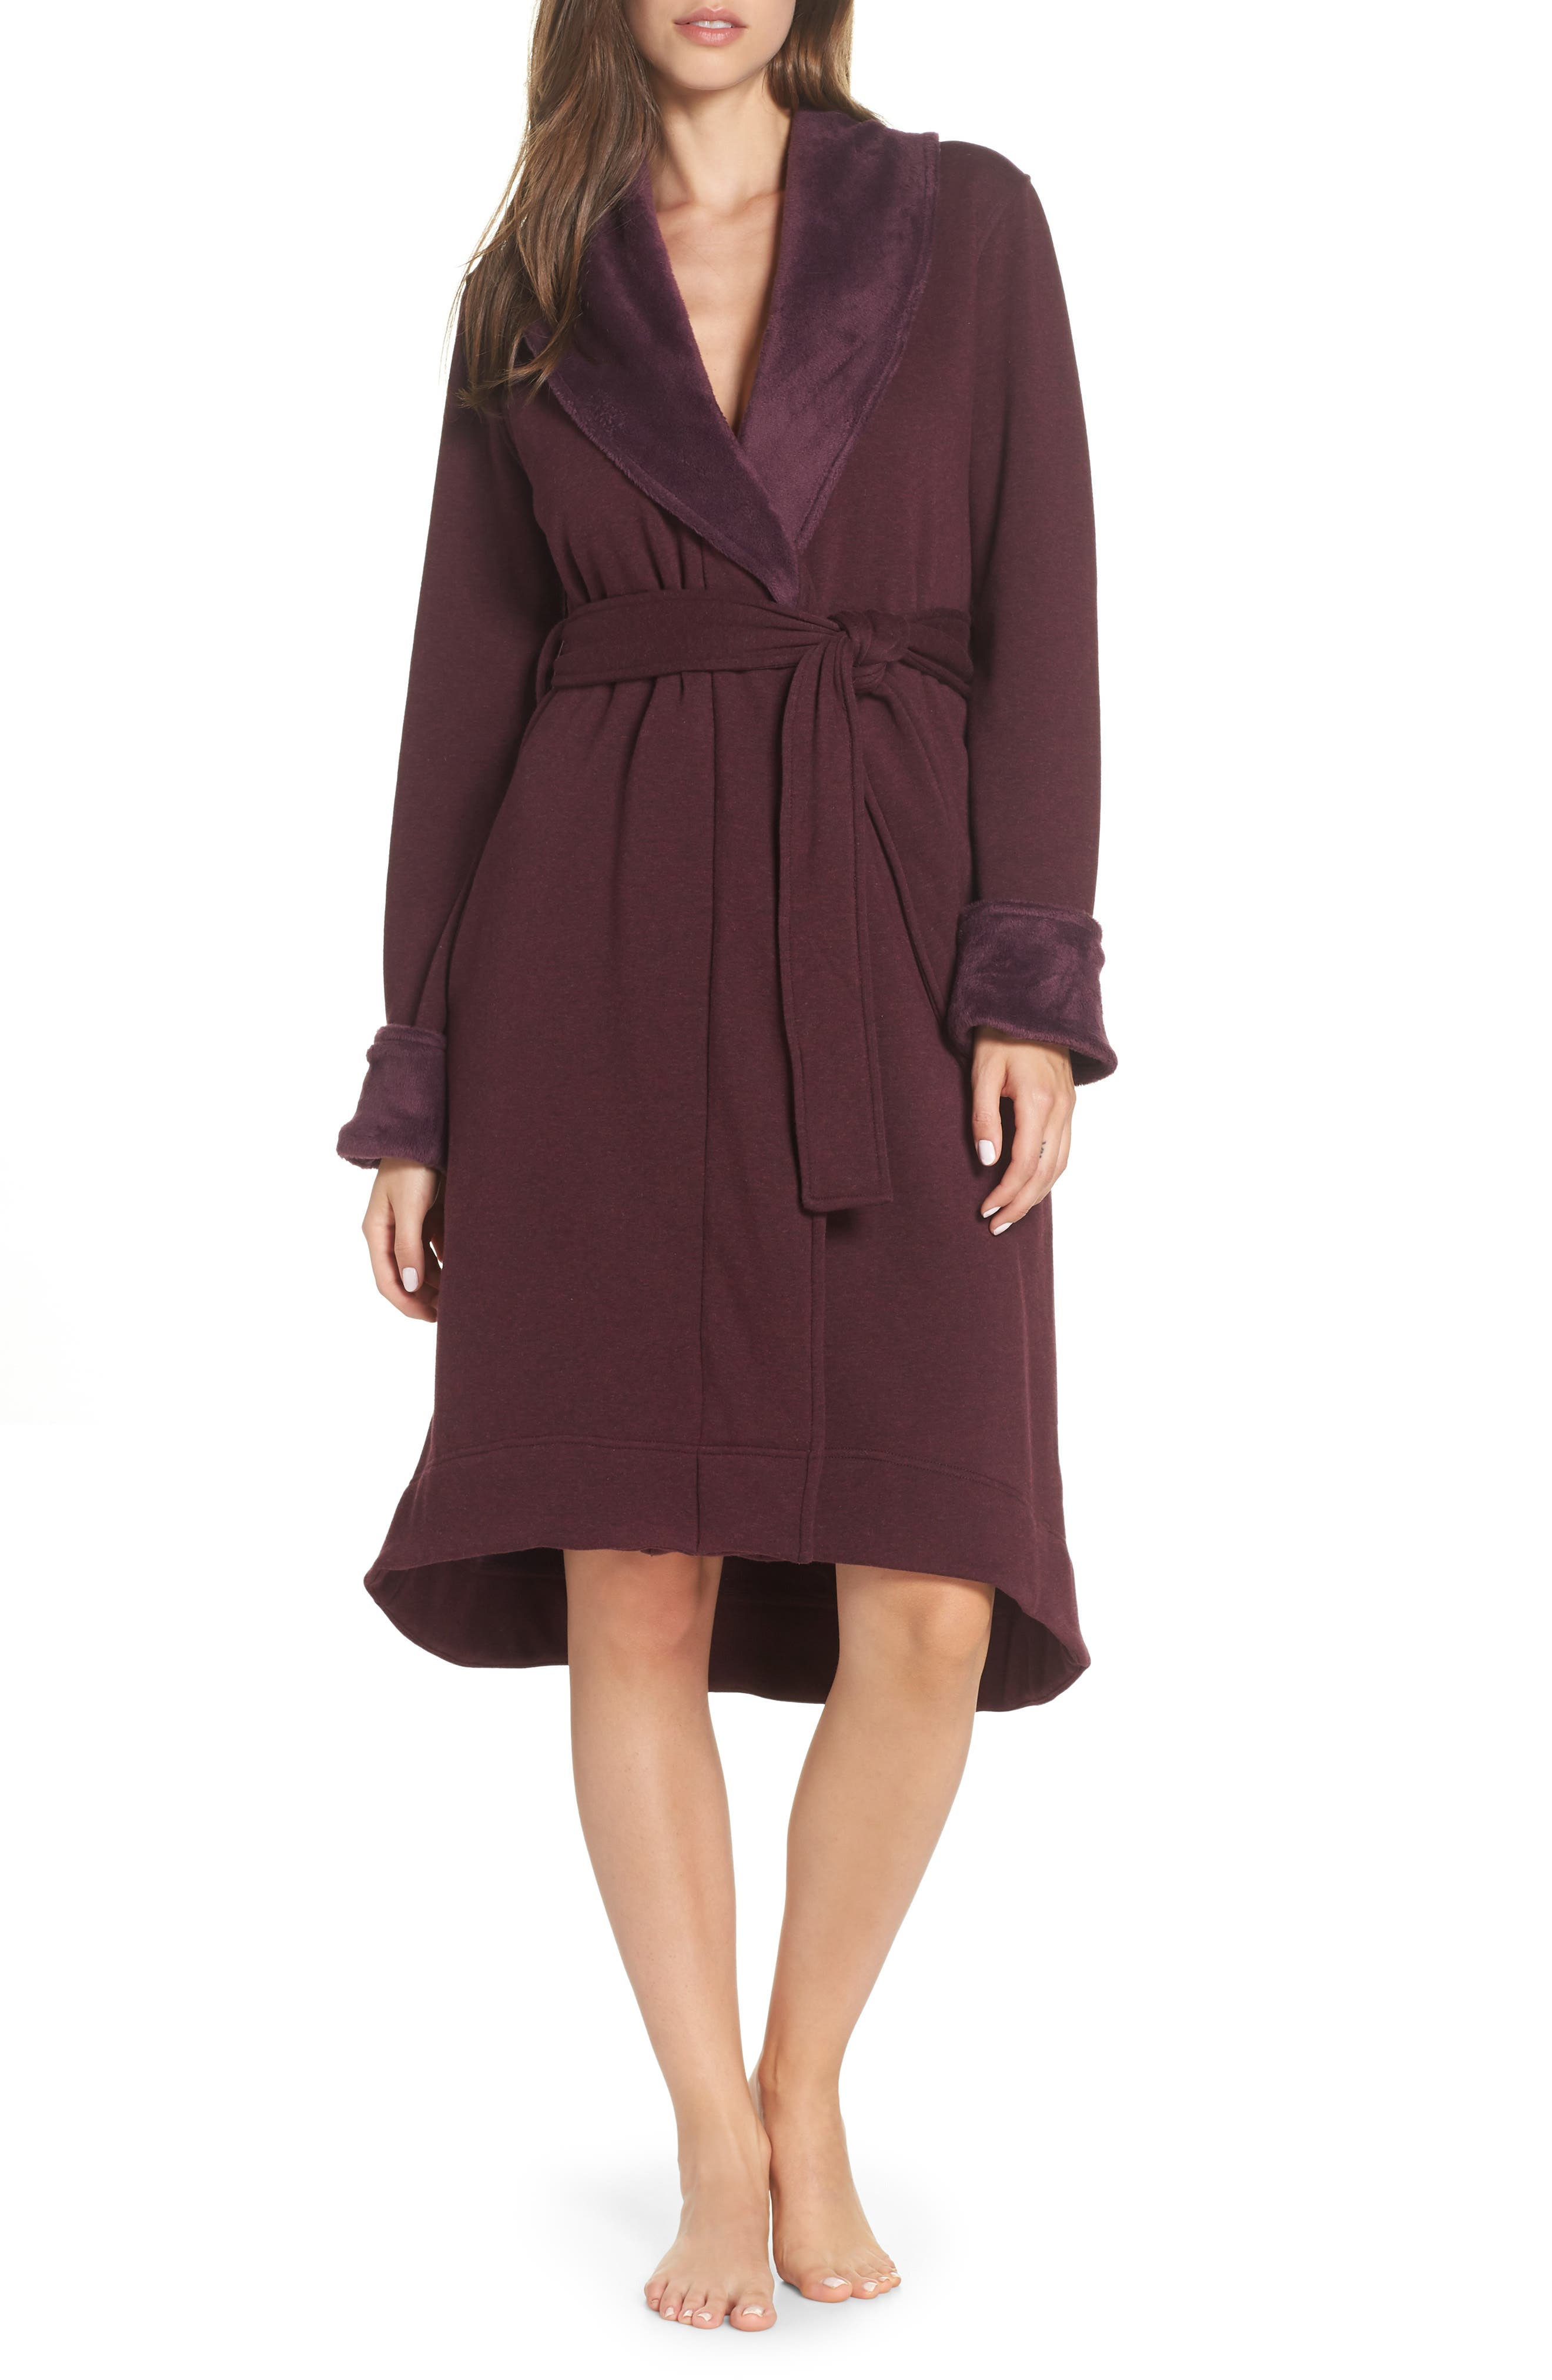 Duffield II Robe,                             Main thumbnail 1, color,                             PORT HEATHER